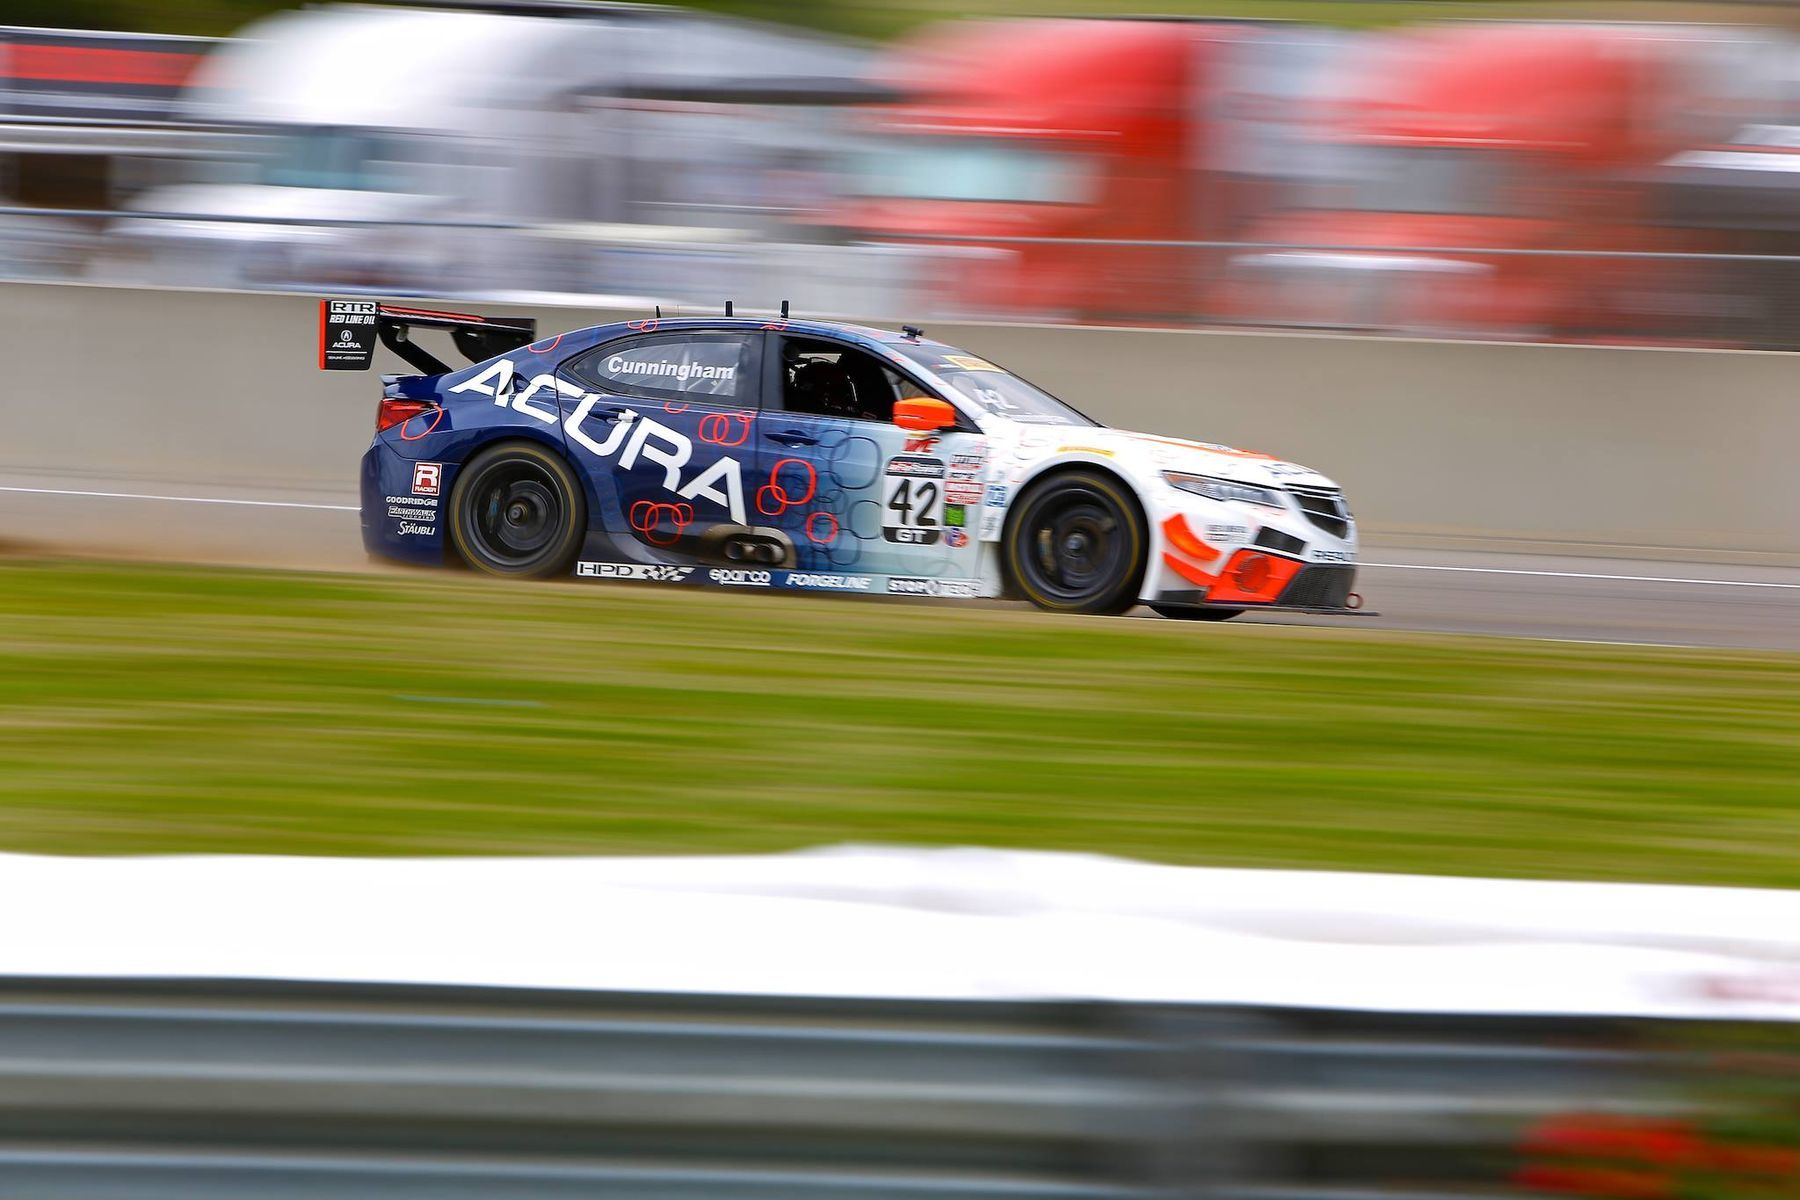 2016 Acura TLX | Peter Cunningham Earns Hard Charger at PWC Round 5 at Barber